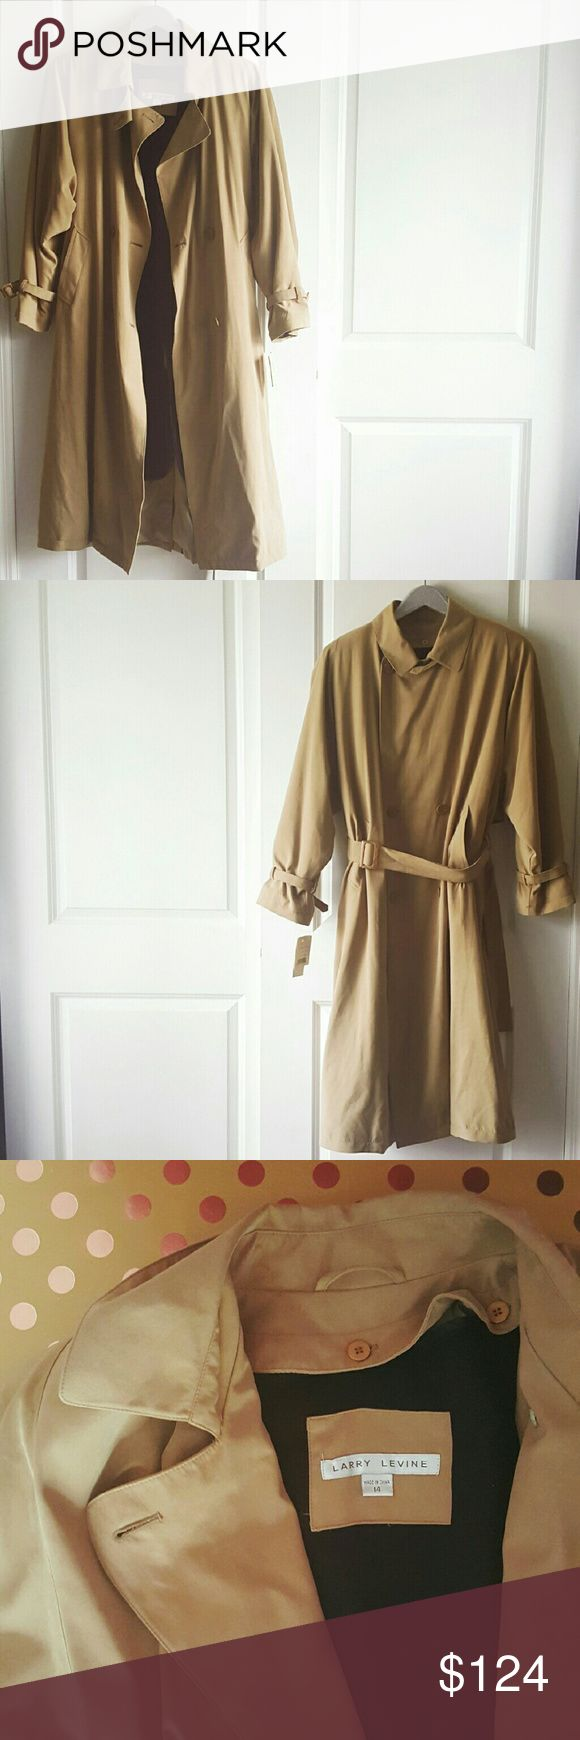 NWT Larry Levine VTG Trench Coat Gorgeous NWT Trench Coat! Beautiful trench coat details with detachable body. Can button either way, left or right side. Grab this before it's gone!! 👕Shell 100% Polyester 👕Detachable body 100% Acrylic 👕Detachable sleeve shell 52% Rayon 48% Acetate 💖 Every listing purchased enters you in for a gift card drawing at the end of the month. Larry Levine Jackets & Coats Trench Coats